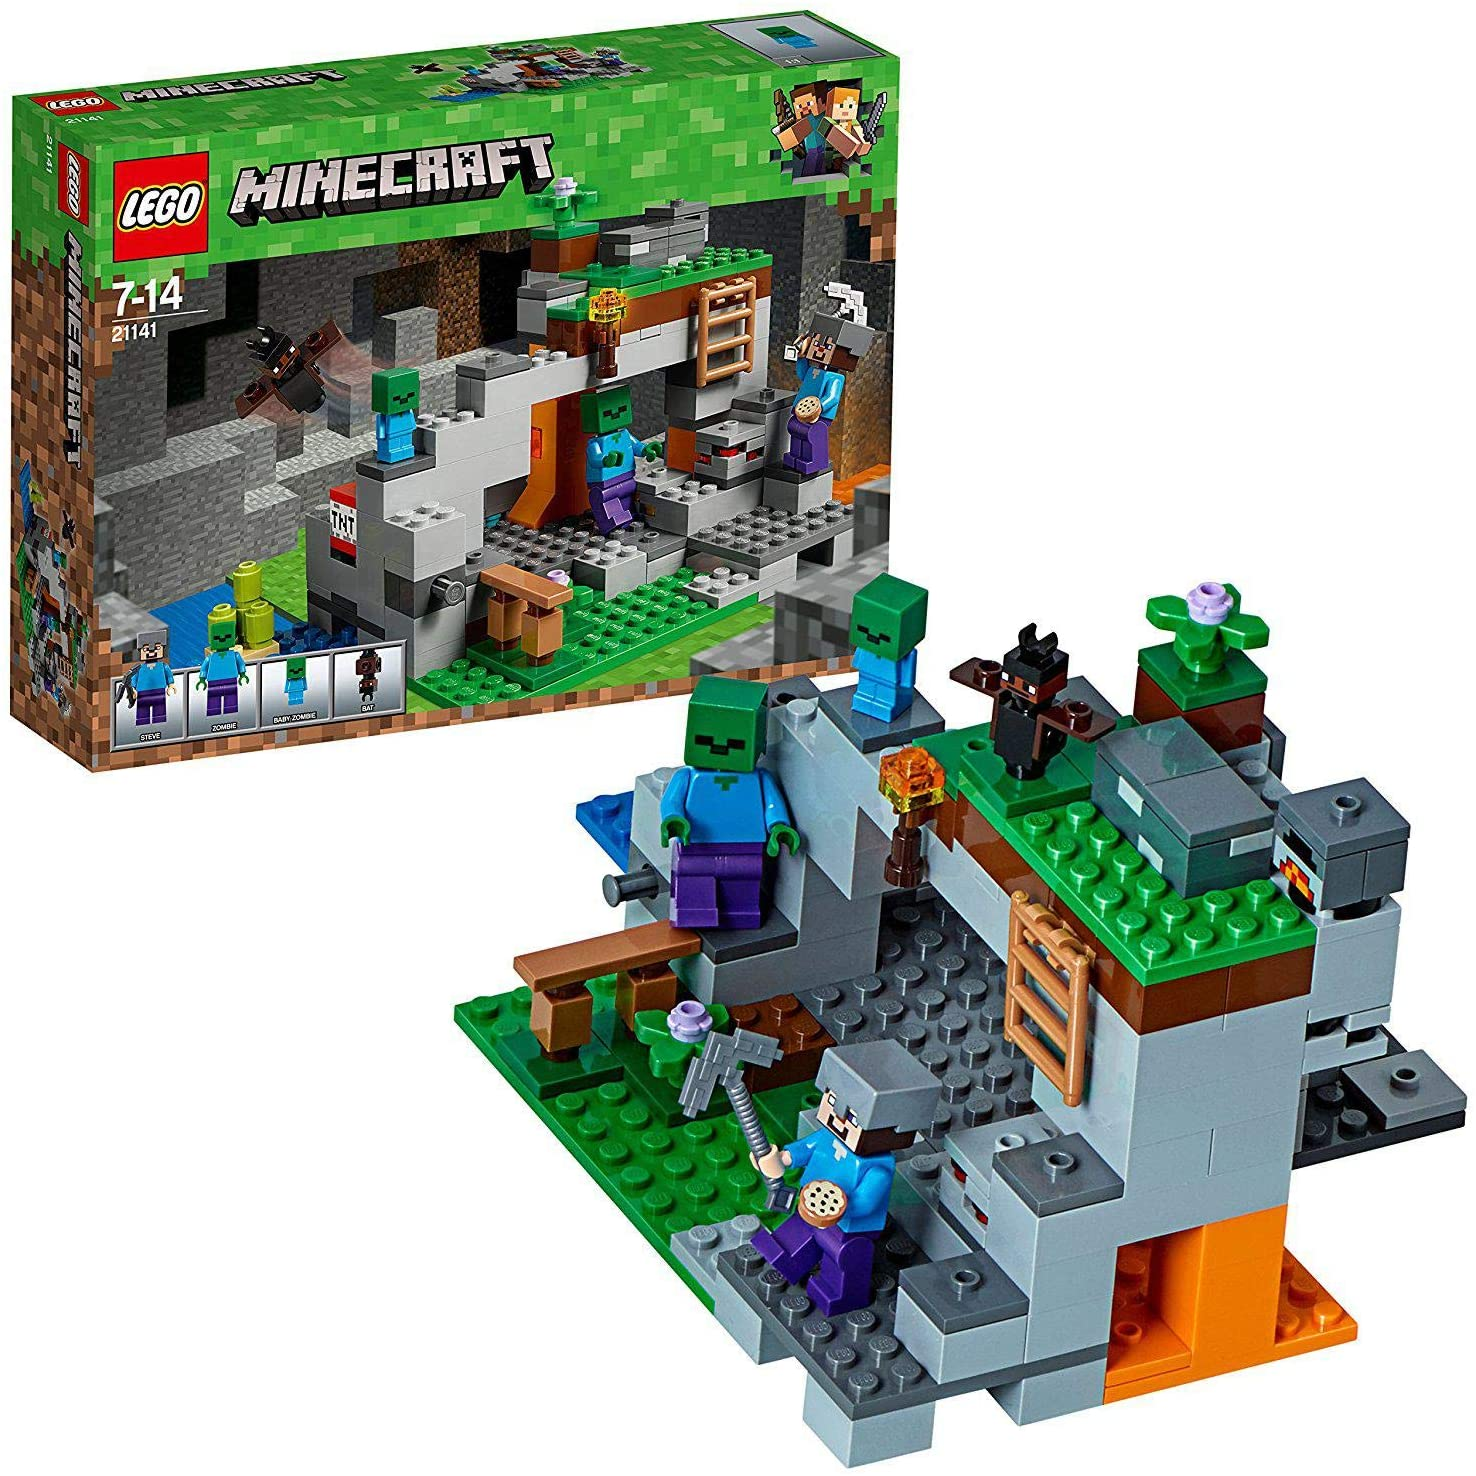 LEGO 21141 Minecraft The Zombie Cave Adventures Building Set with Steve, Zombie and Baby Zombie Minifigures Toy for Kids